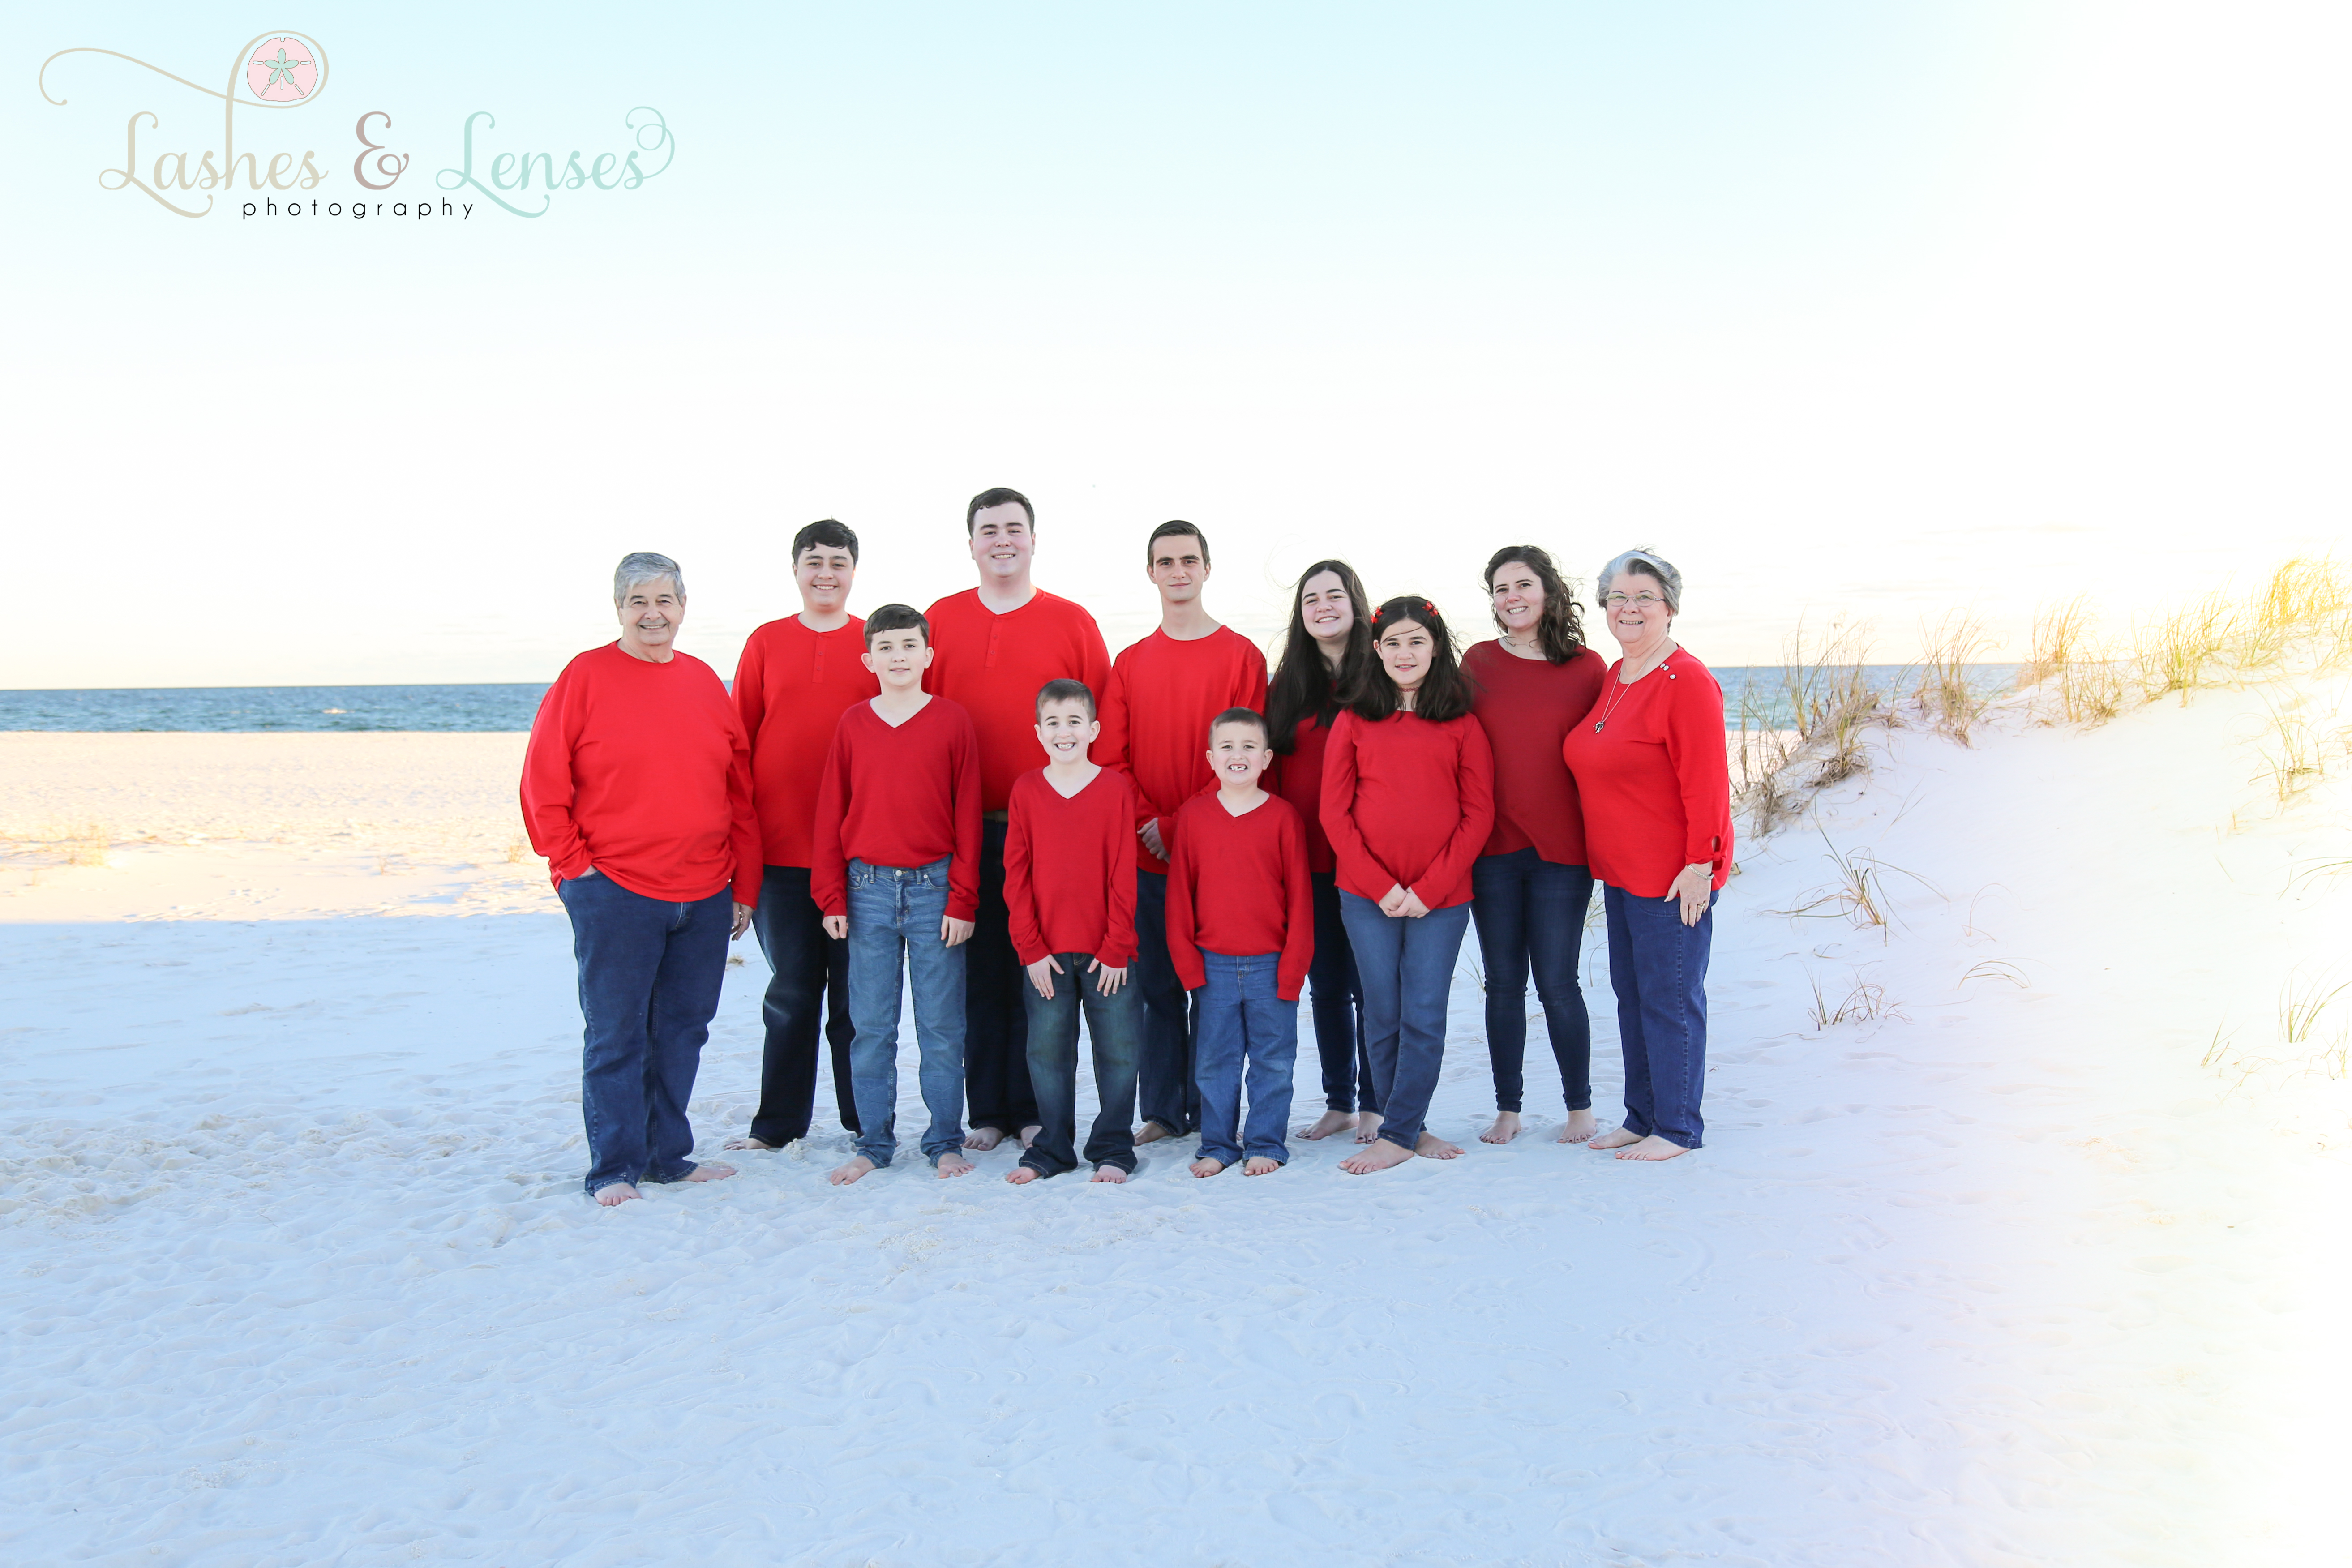 Grandparents with all their grandchildren with the water behind them at Johnsons Beach in Perdido Key